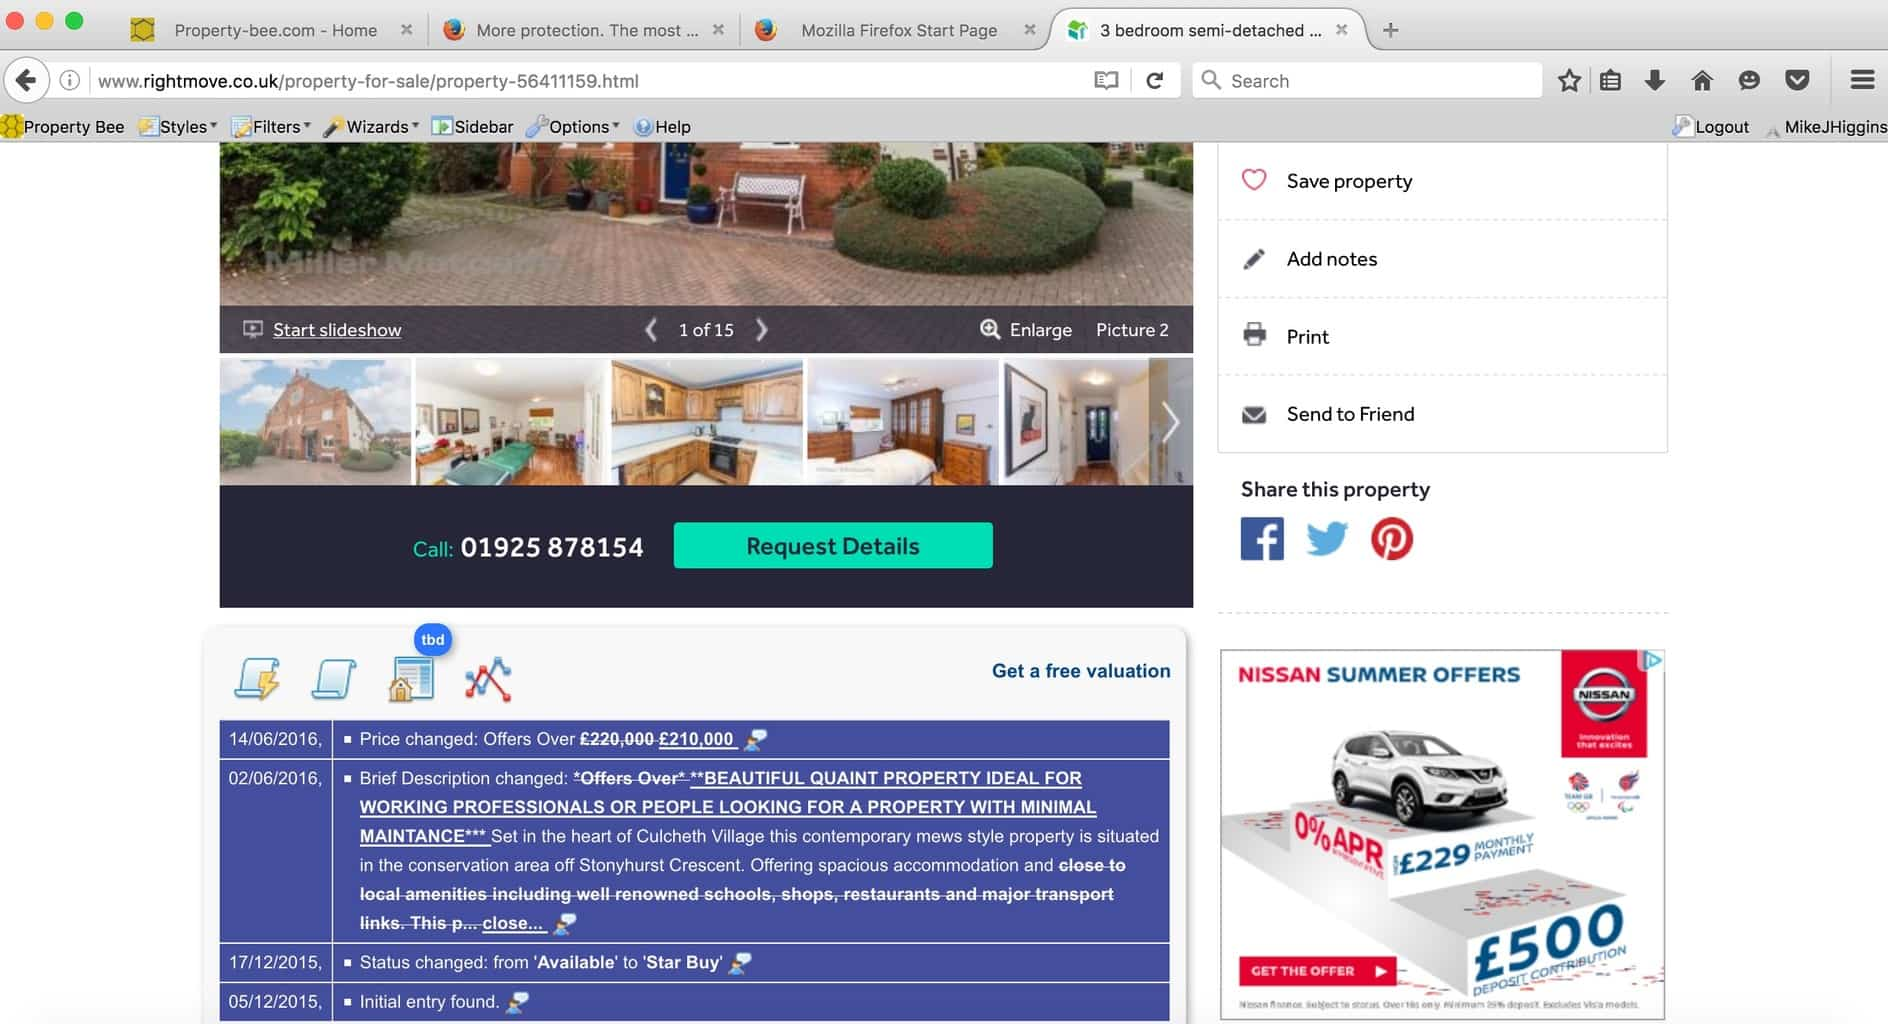 property bee in action on rightmove